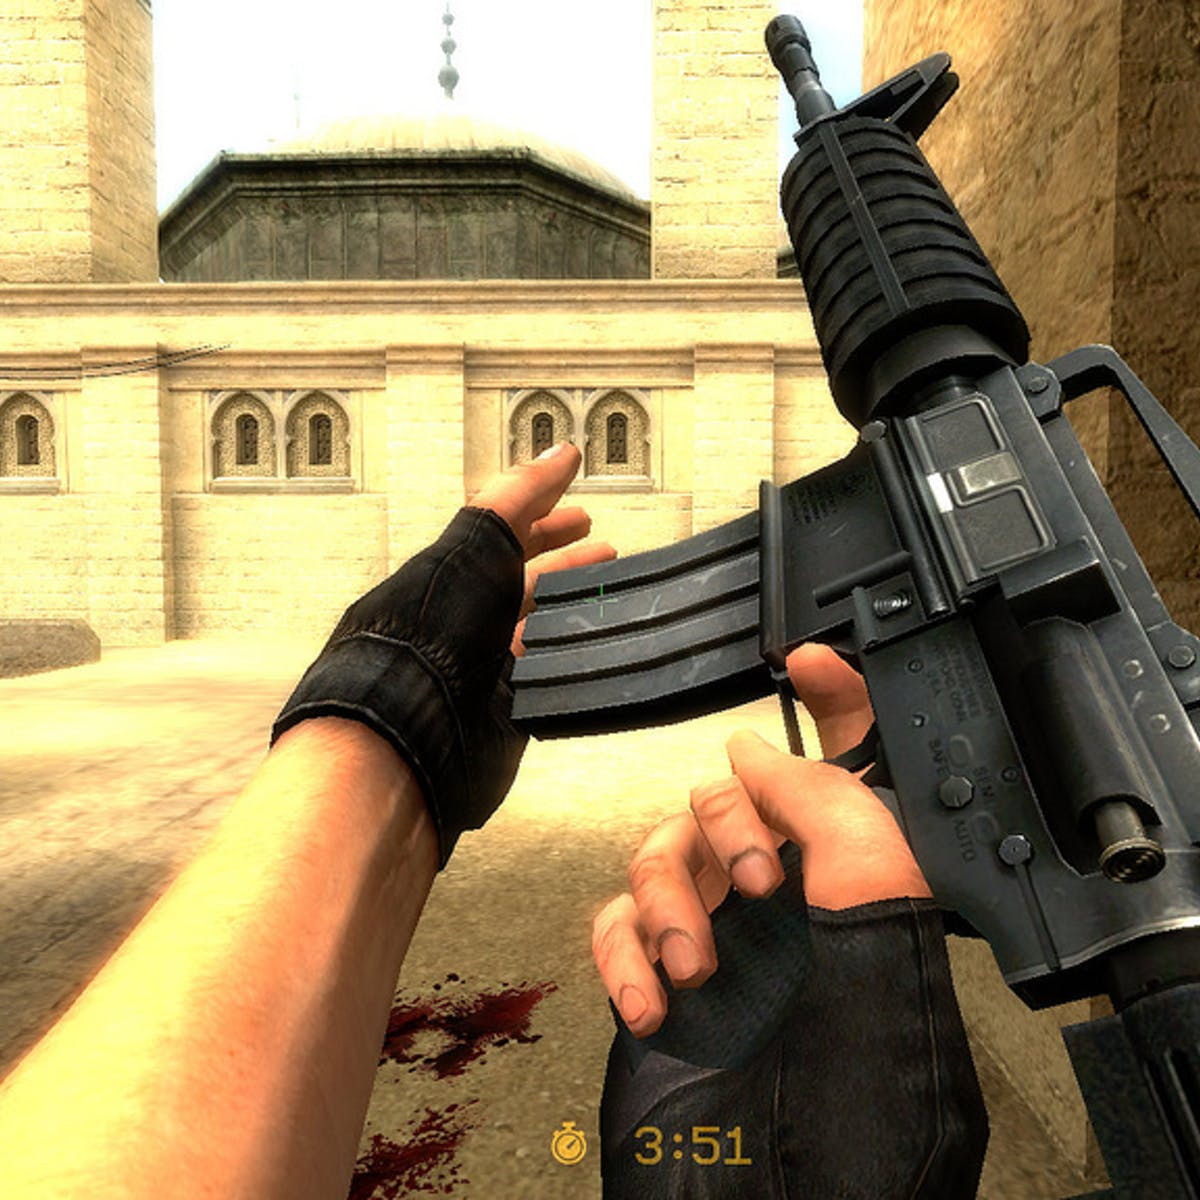 Roblox Cs Go Rip Off How The Us Military Is Using Violent Chaotic Beautiful Video Games To Train Soldiers